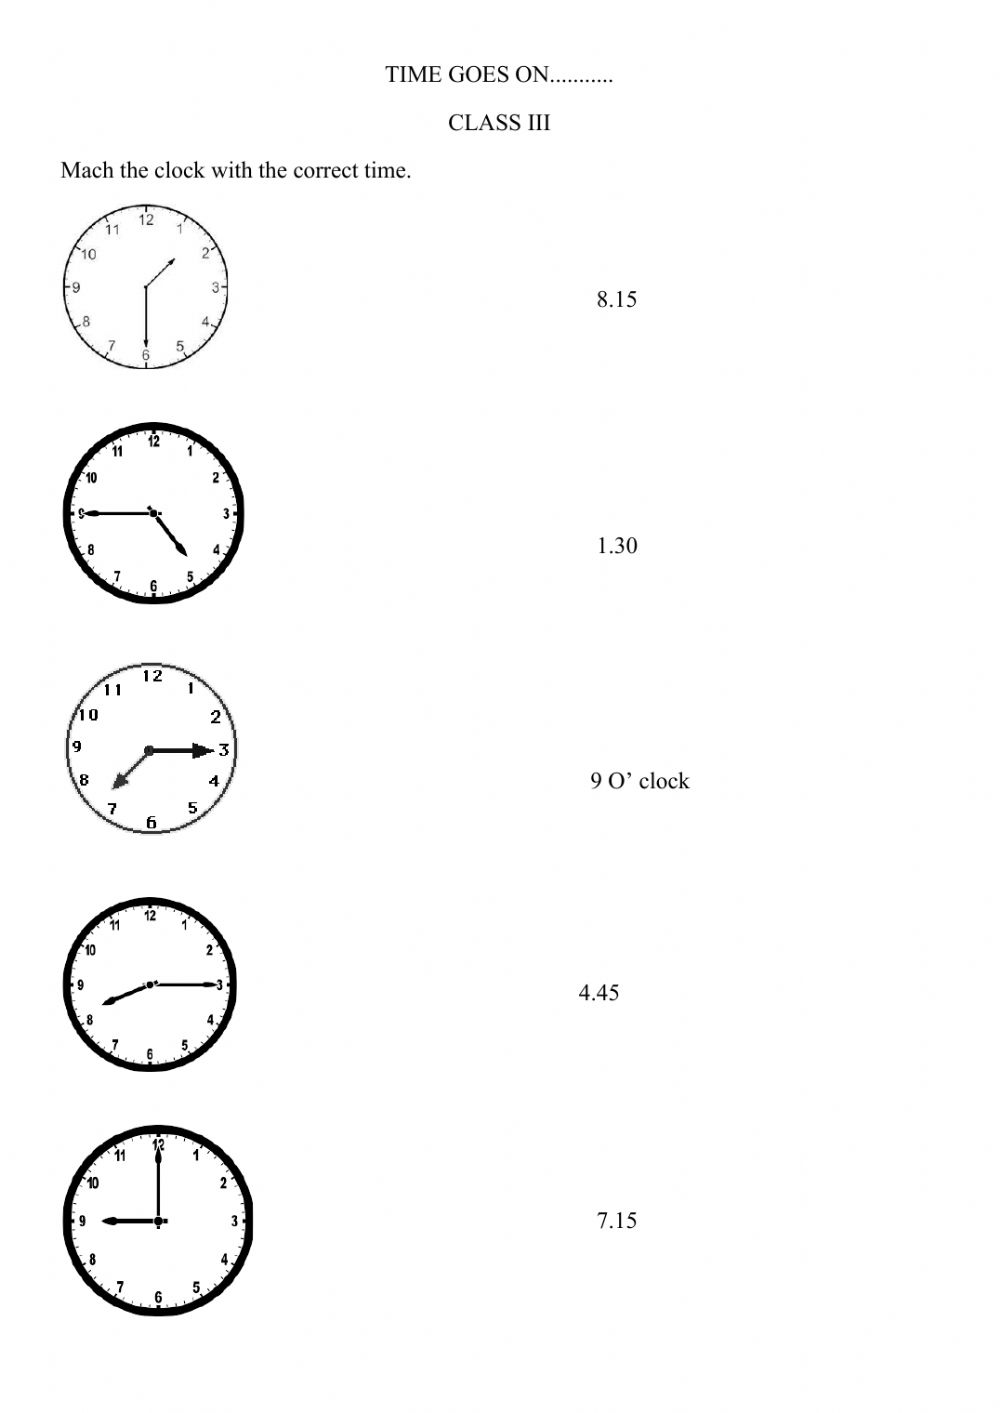 Time online exercise for GRADE 20